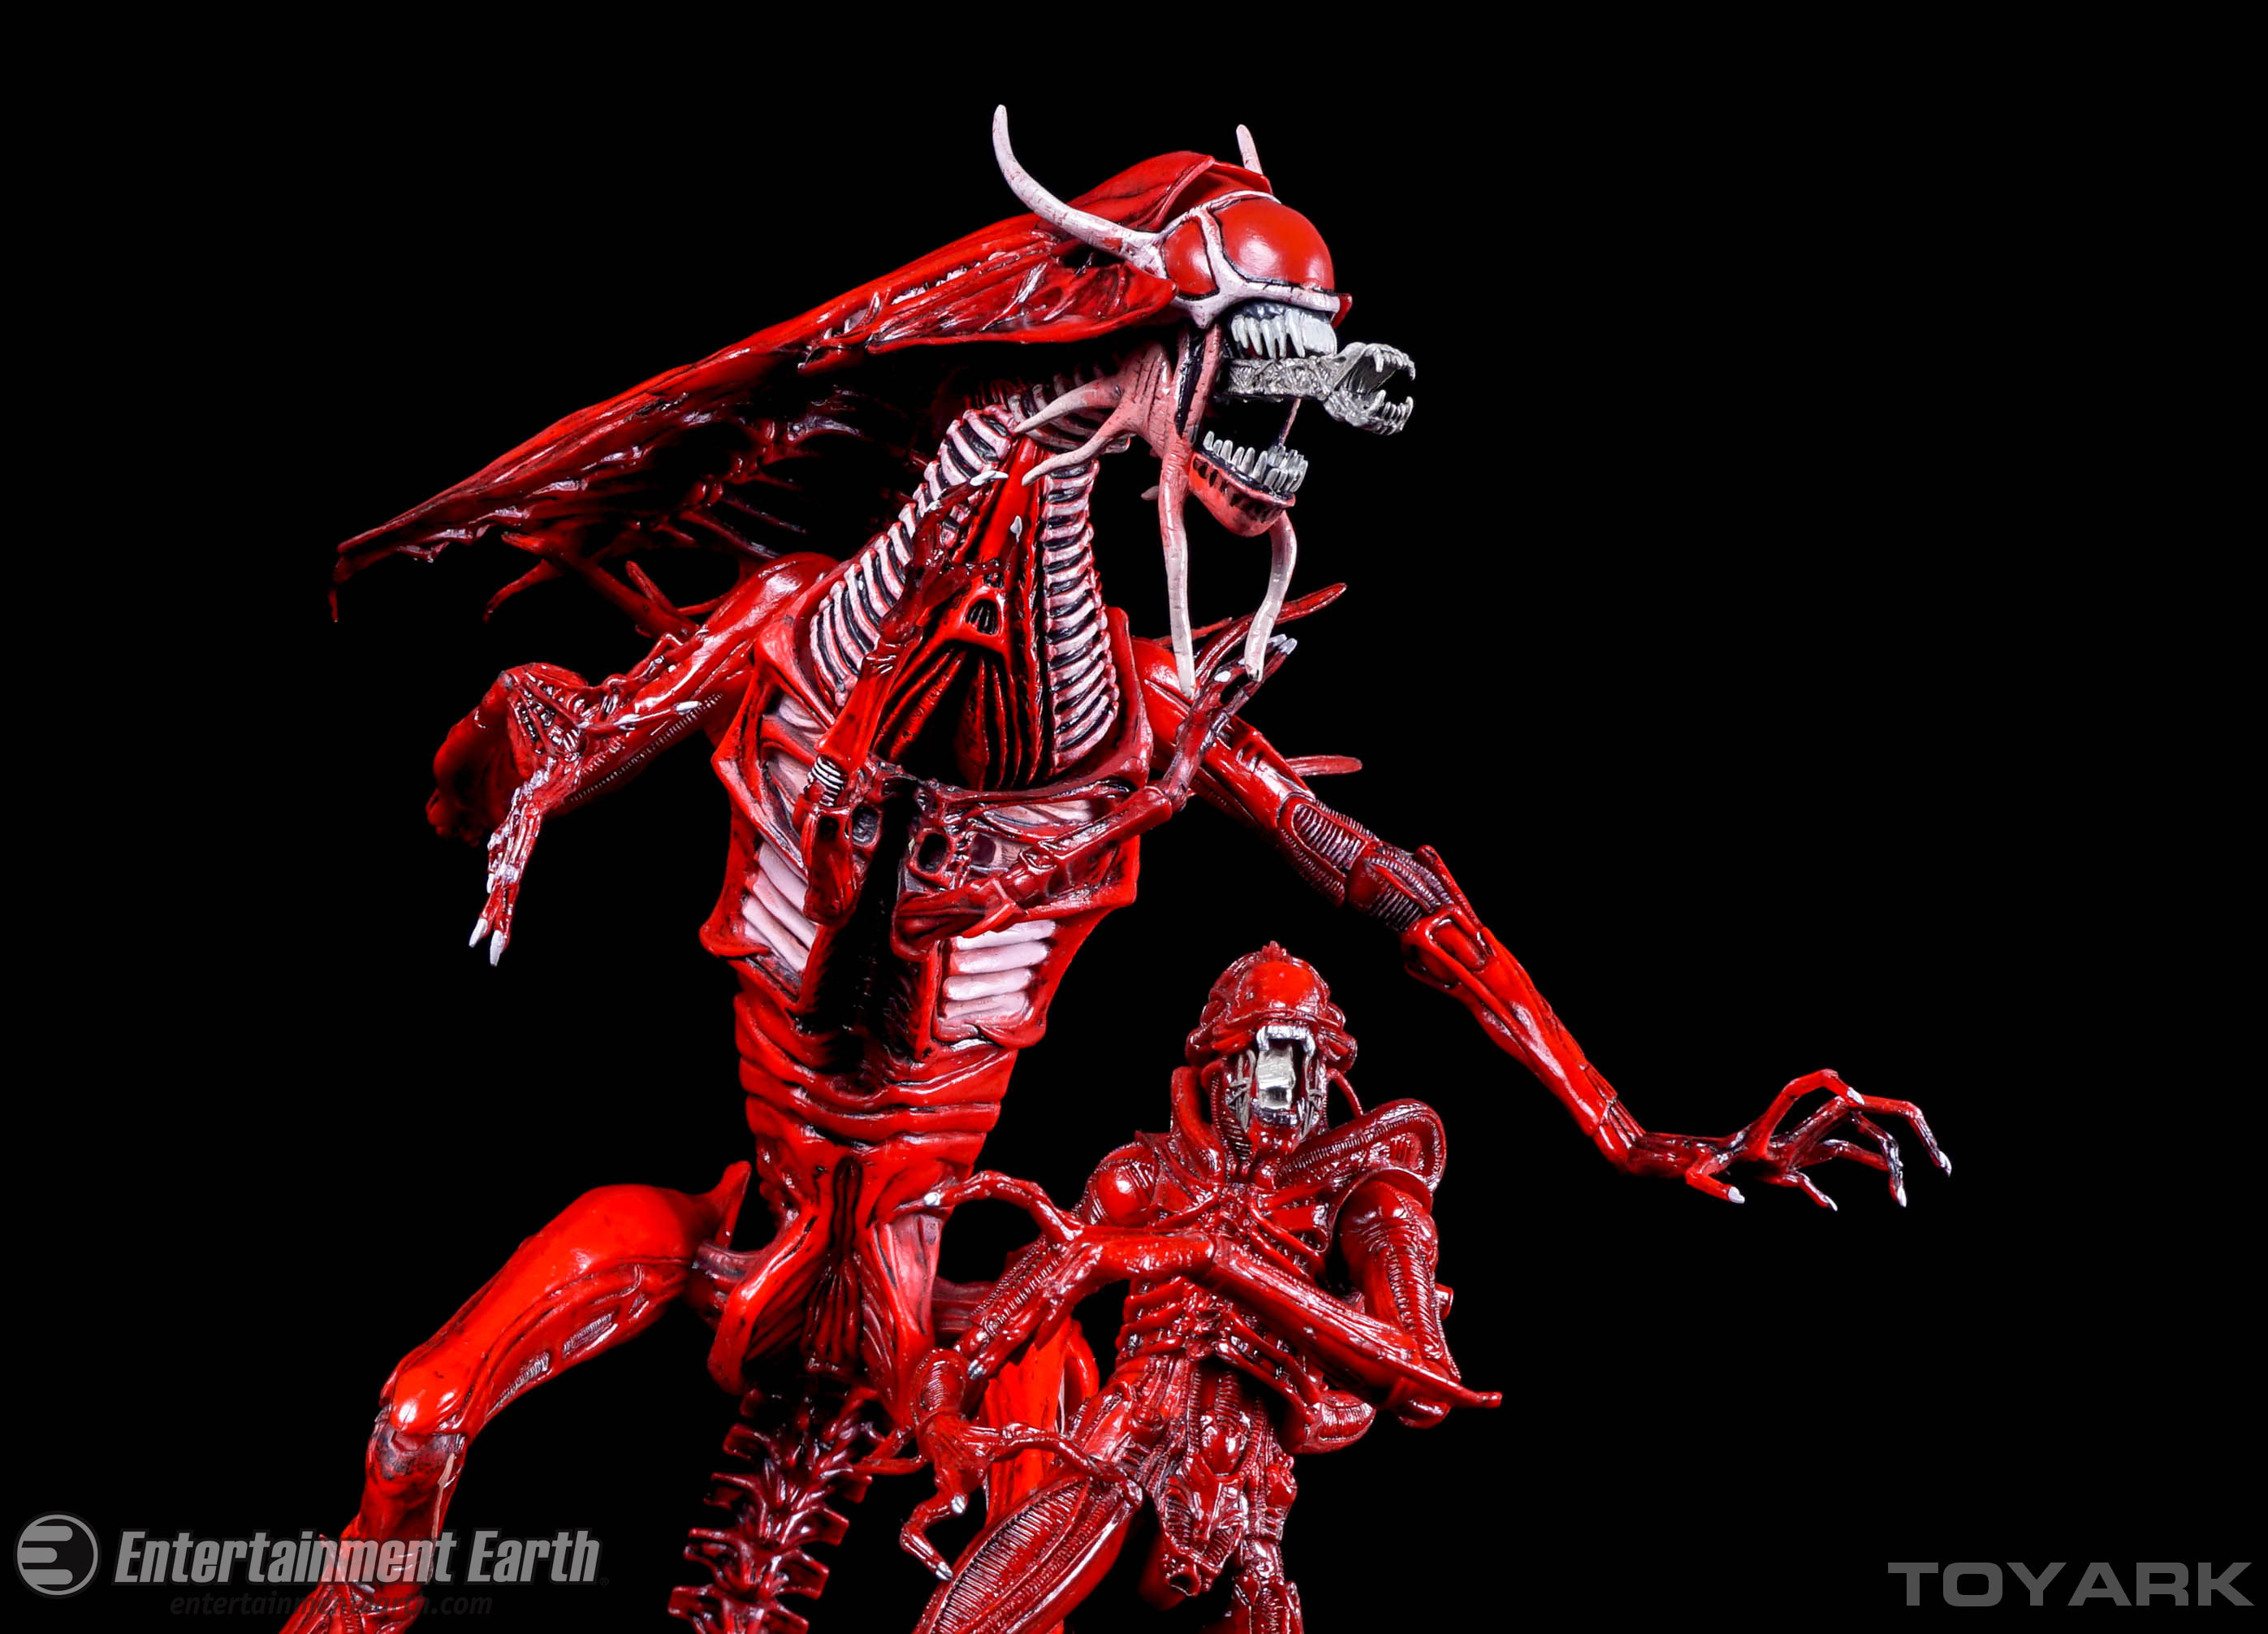 http://news.toyark.com/wp-content/uploads/sites/4/2015/12/NECA-Alien-Red-Queen-039.jpg